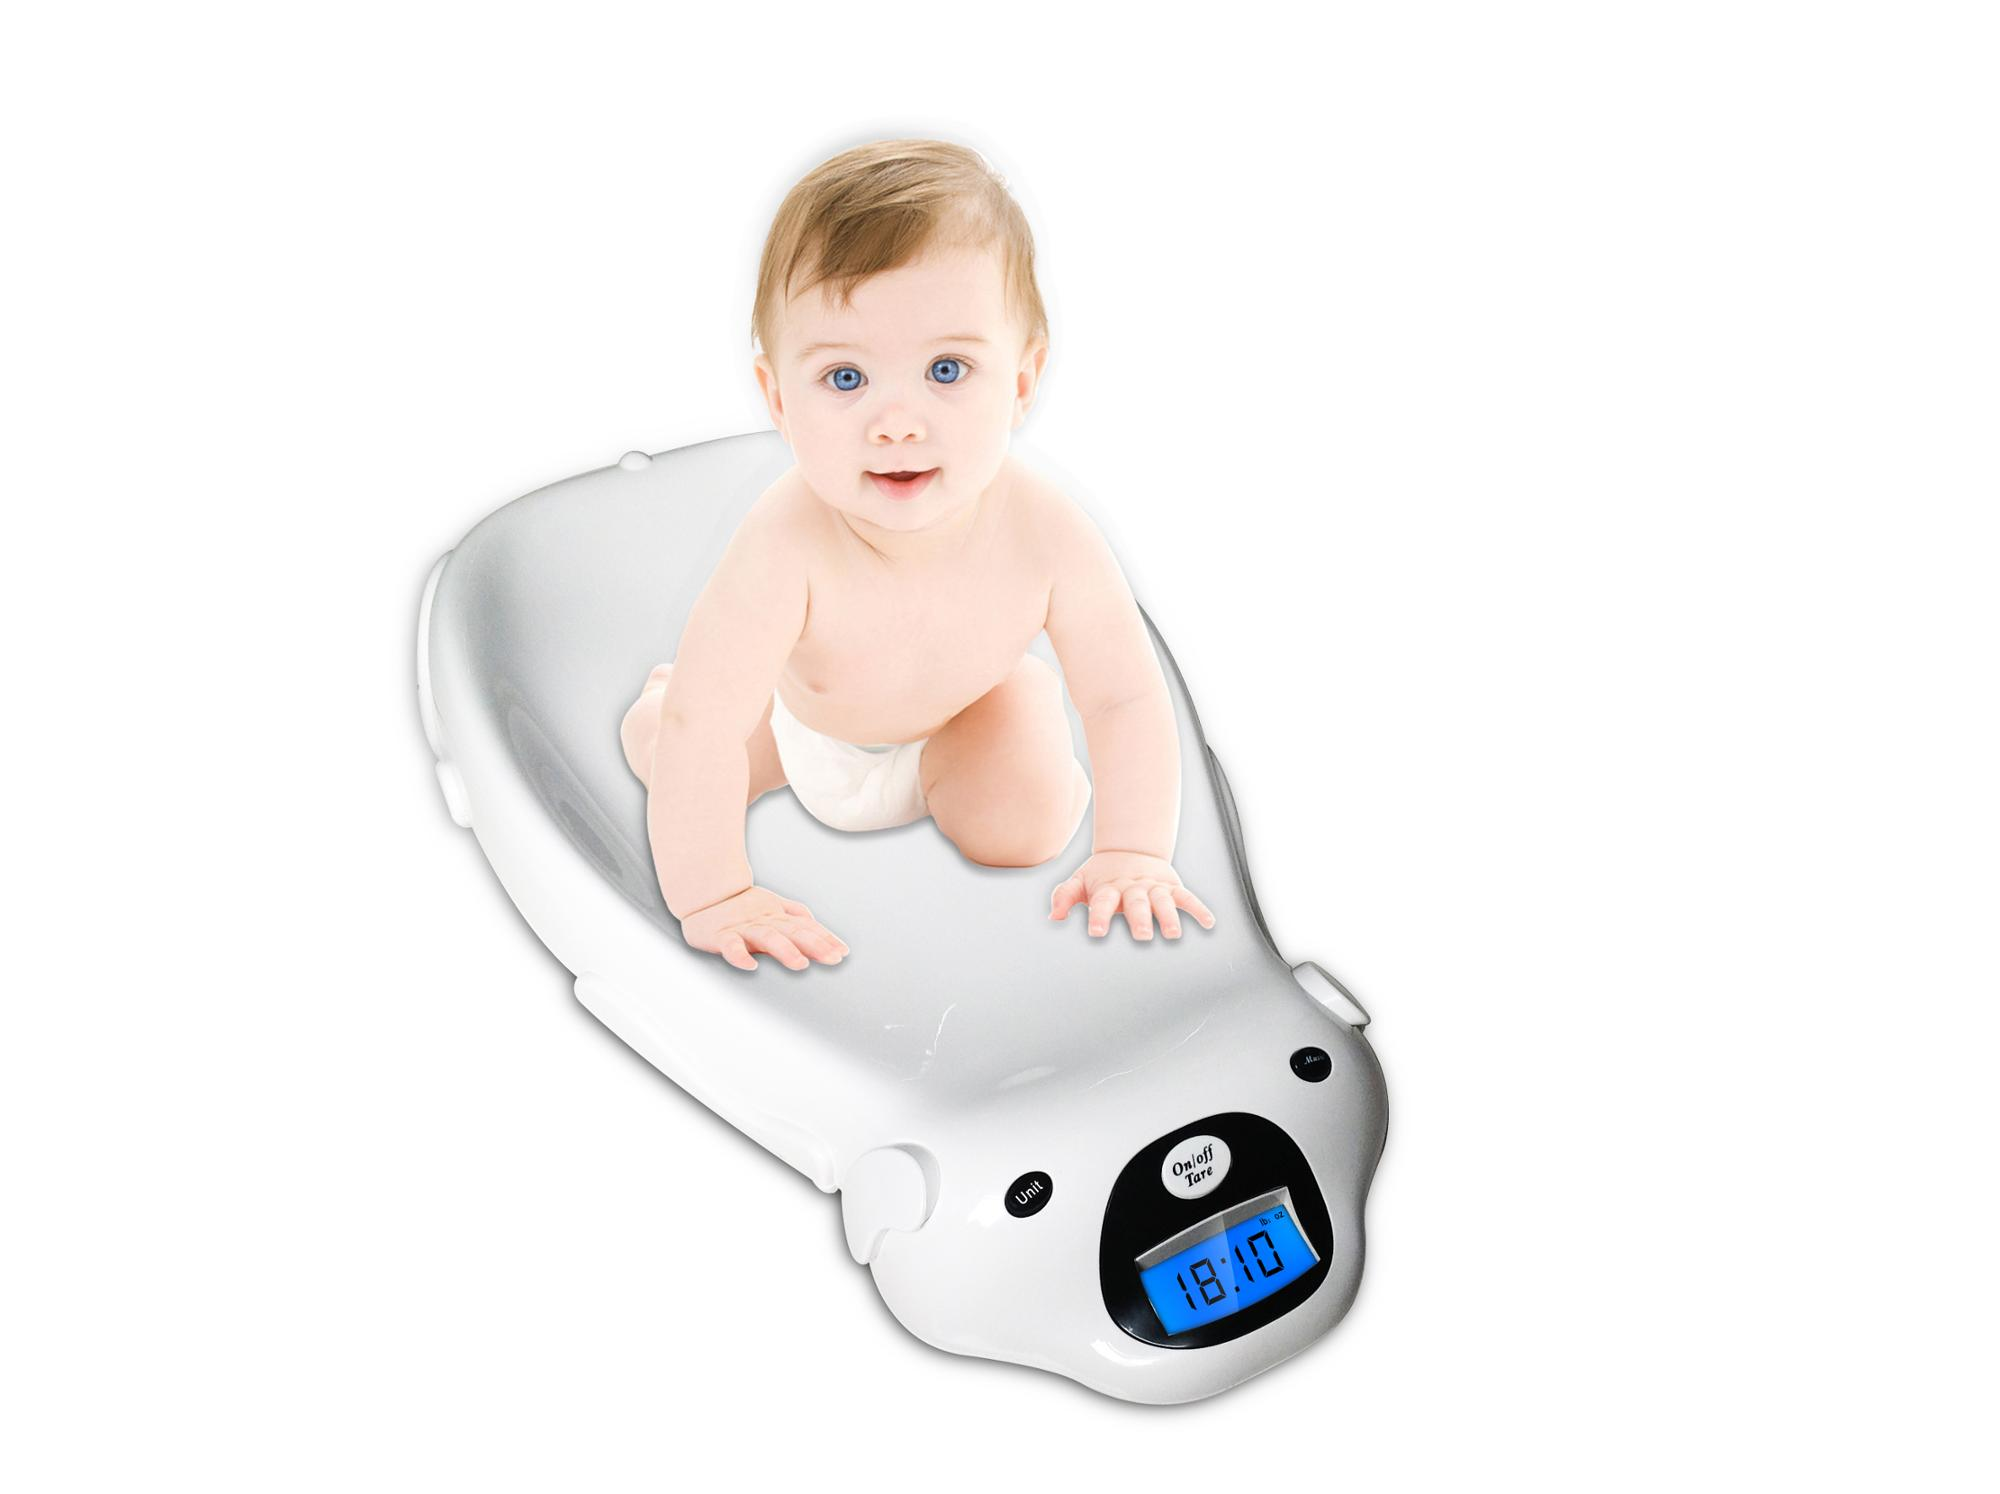 Good quality new ultra newborn infant baby digital weight scale with music and grown-up chart